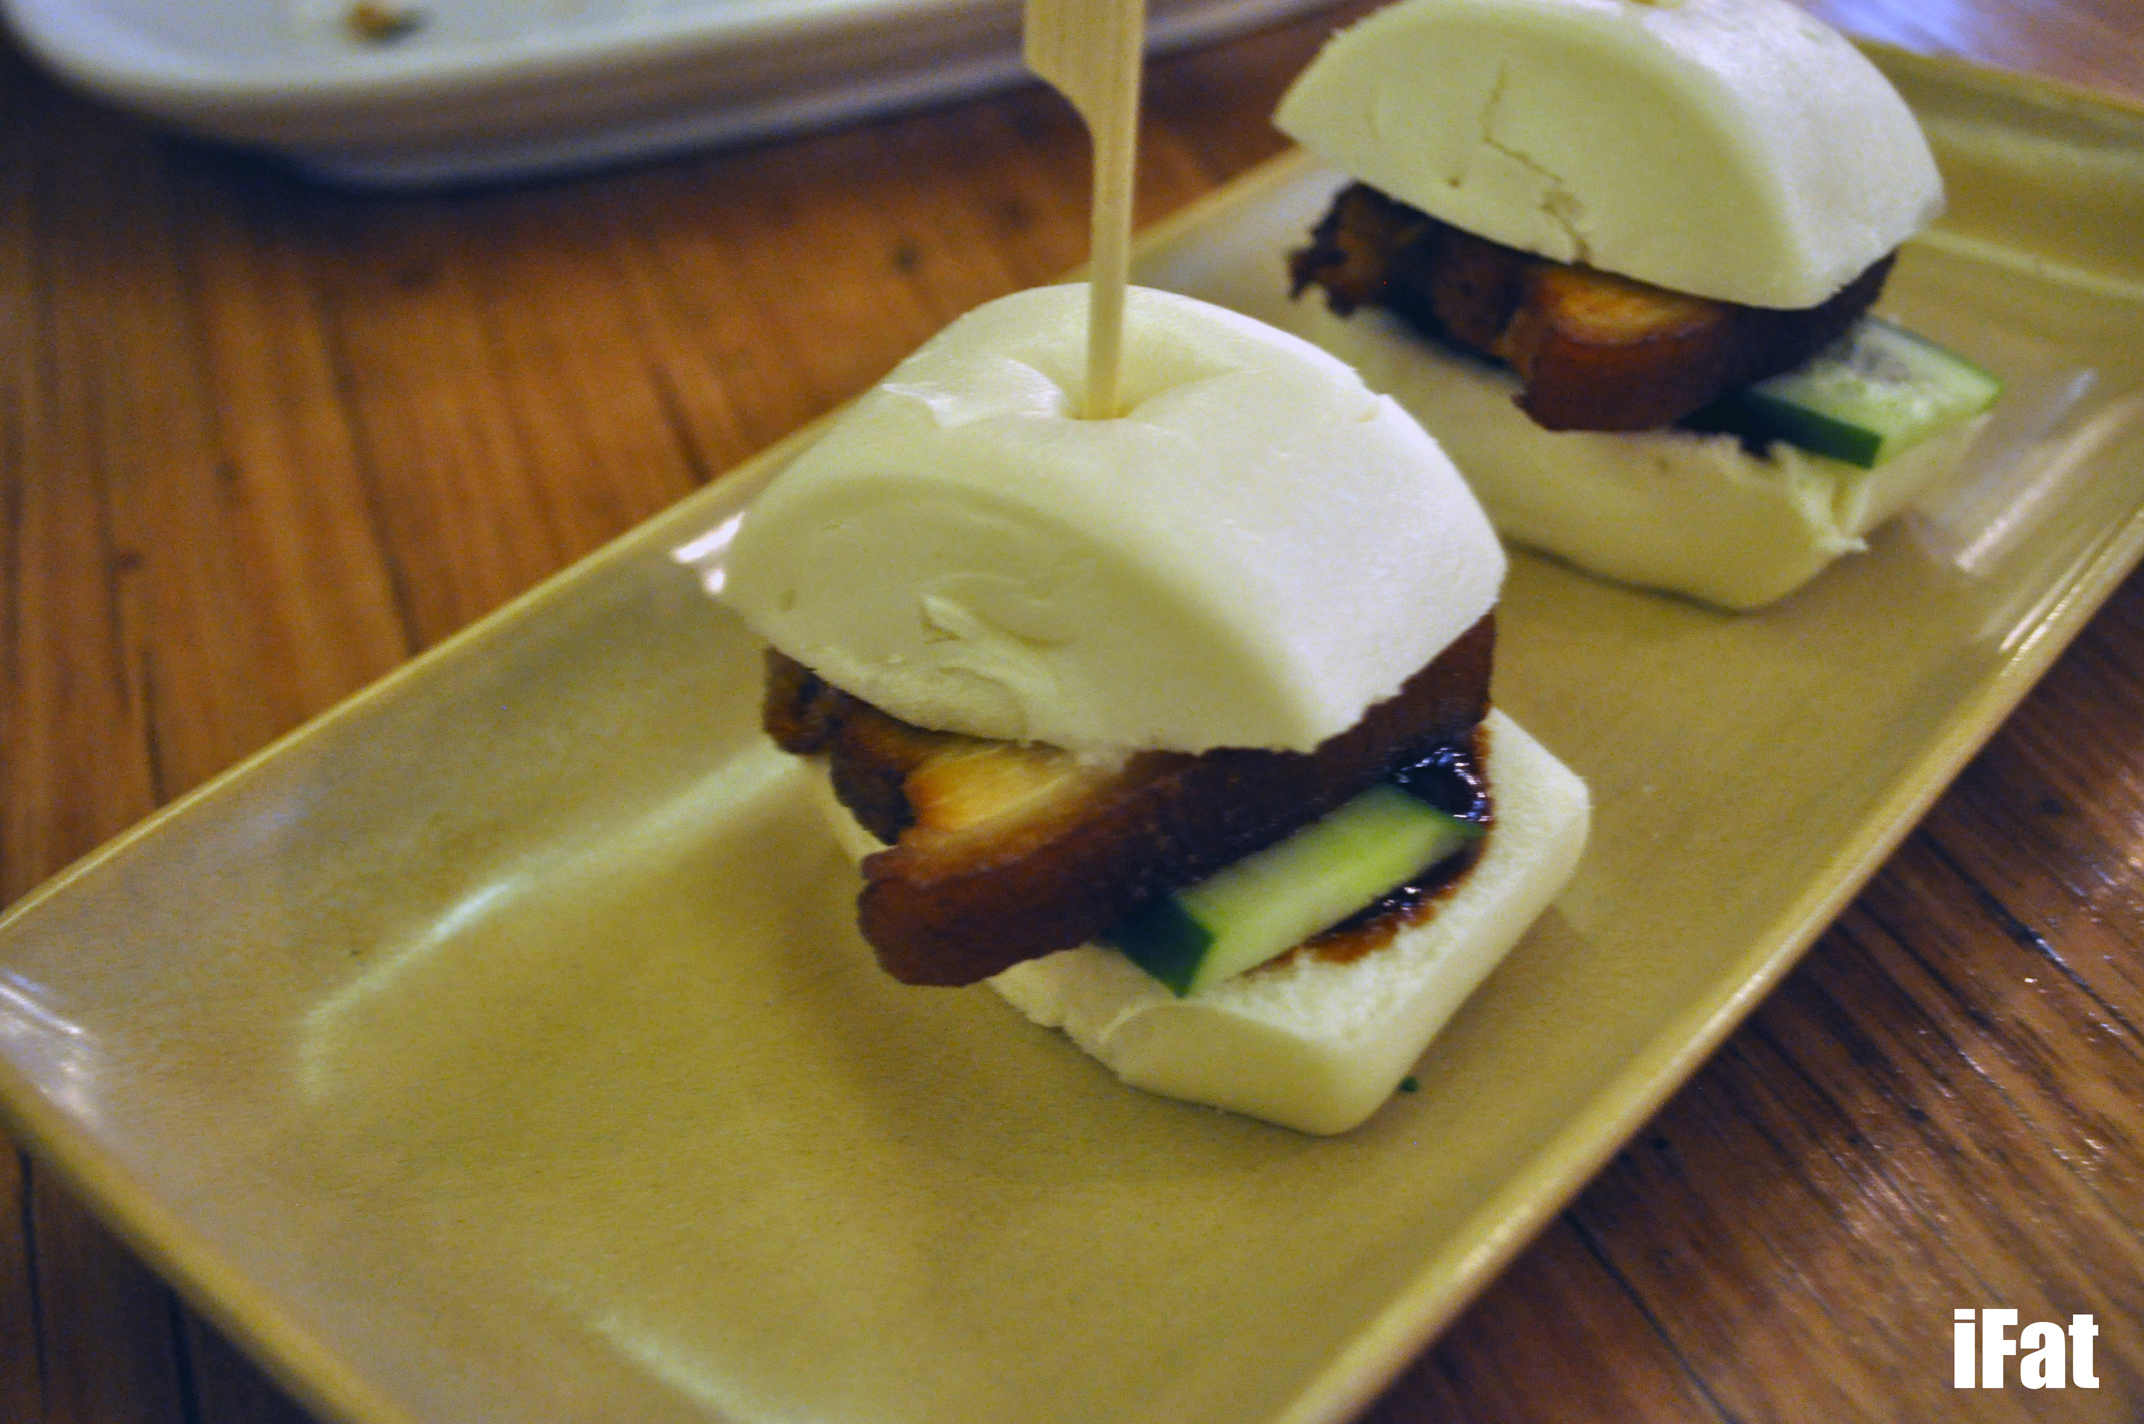 Pork buns at Chi & Co, Fairfield